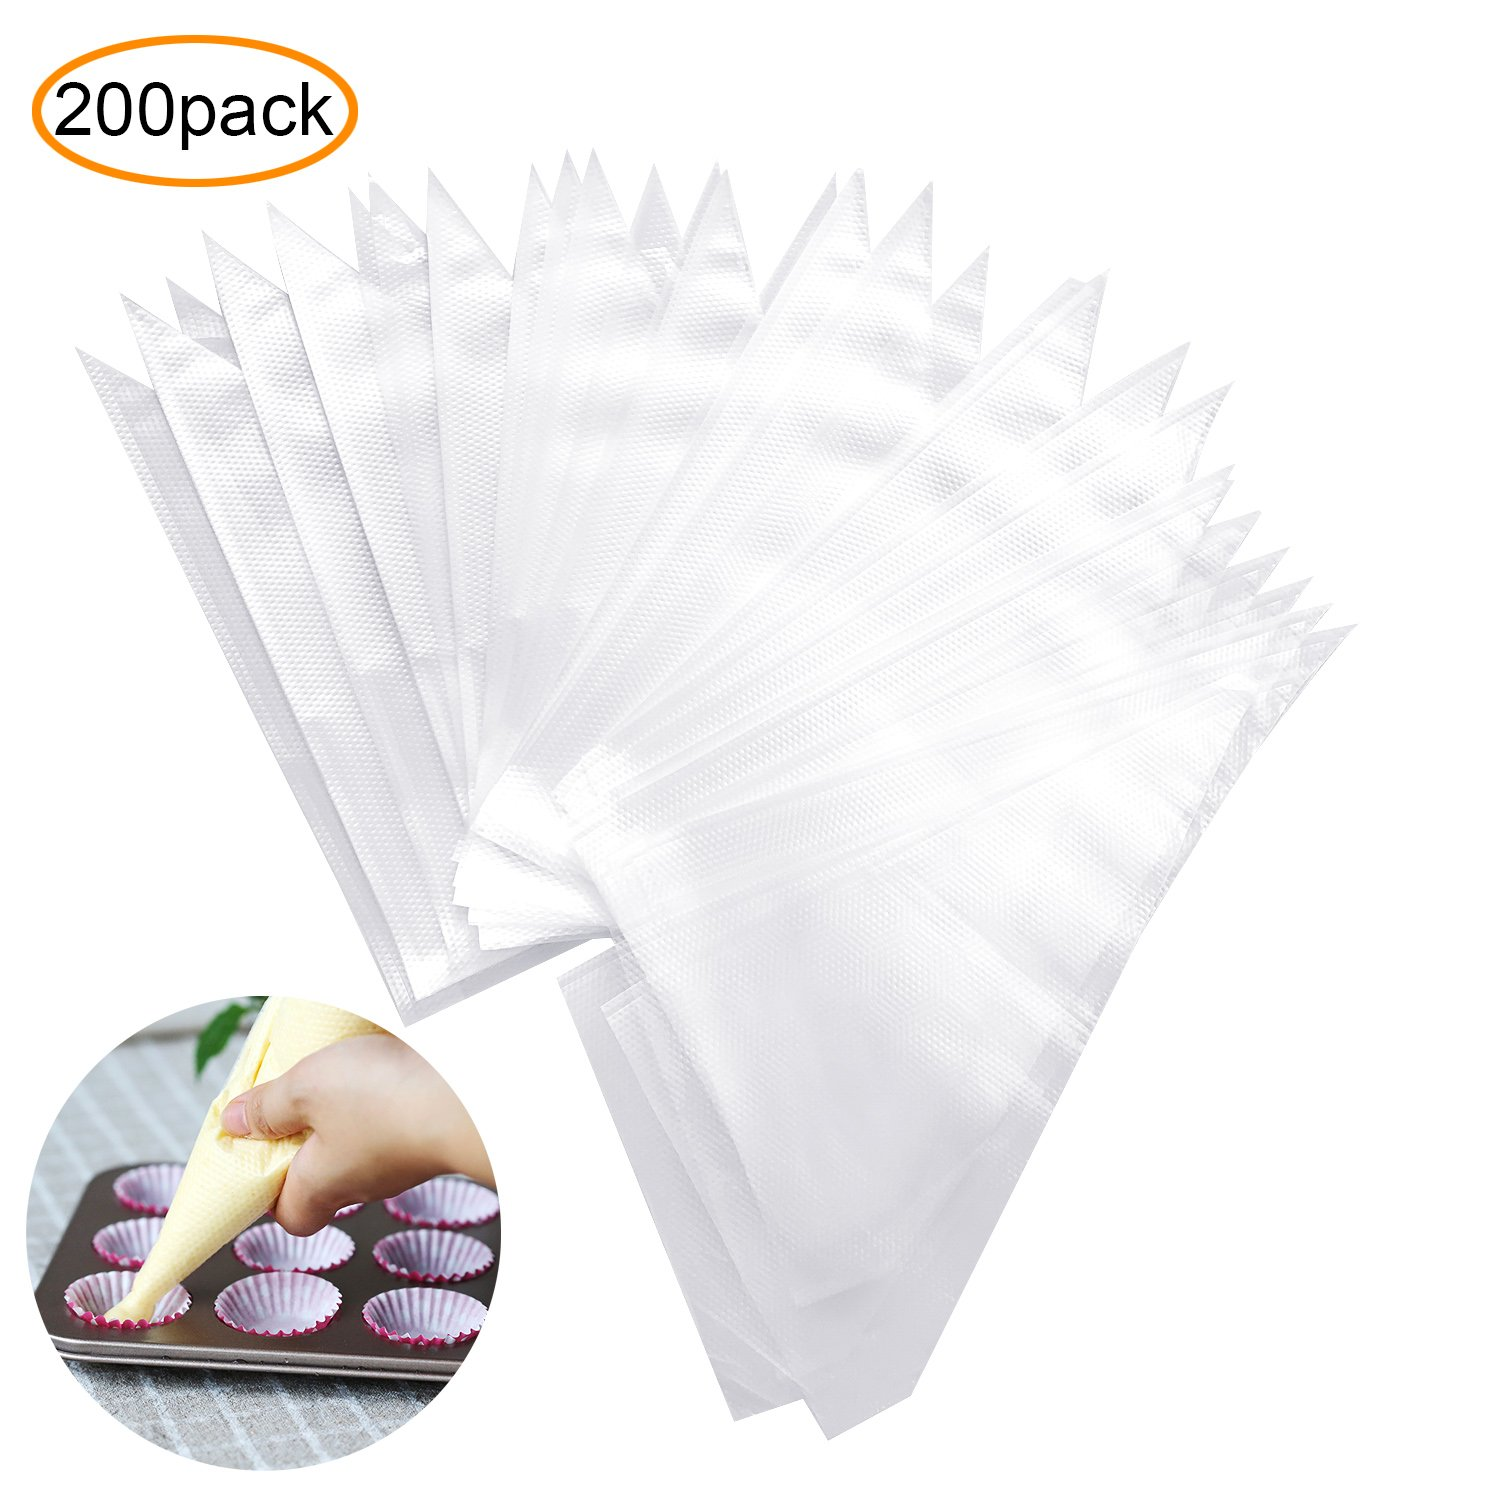 200 Pcs Thickened Disposable Pastry Bag Pastry Decorating Bags Icing Piping Bag